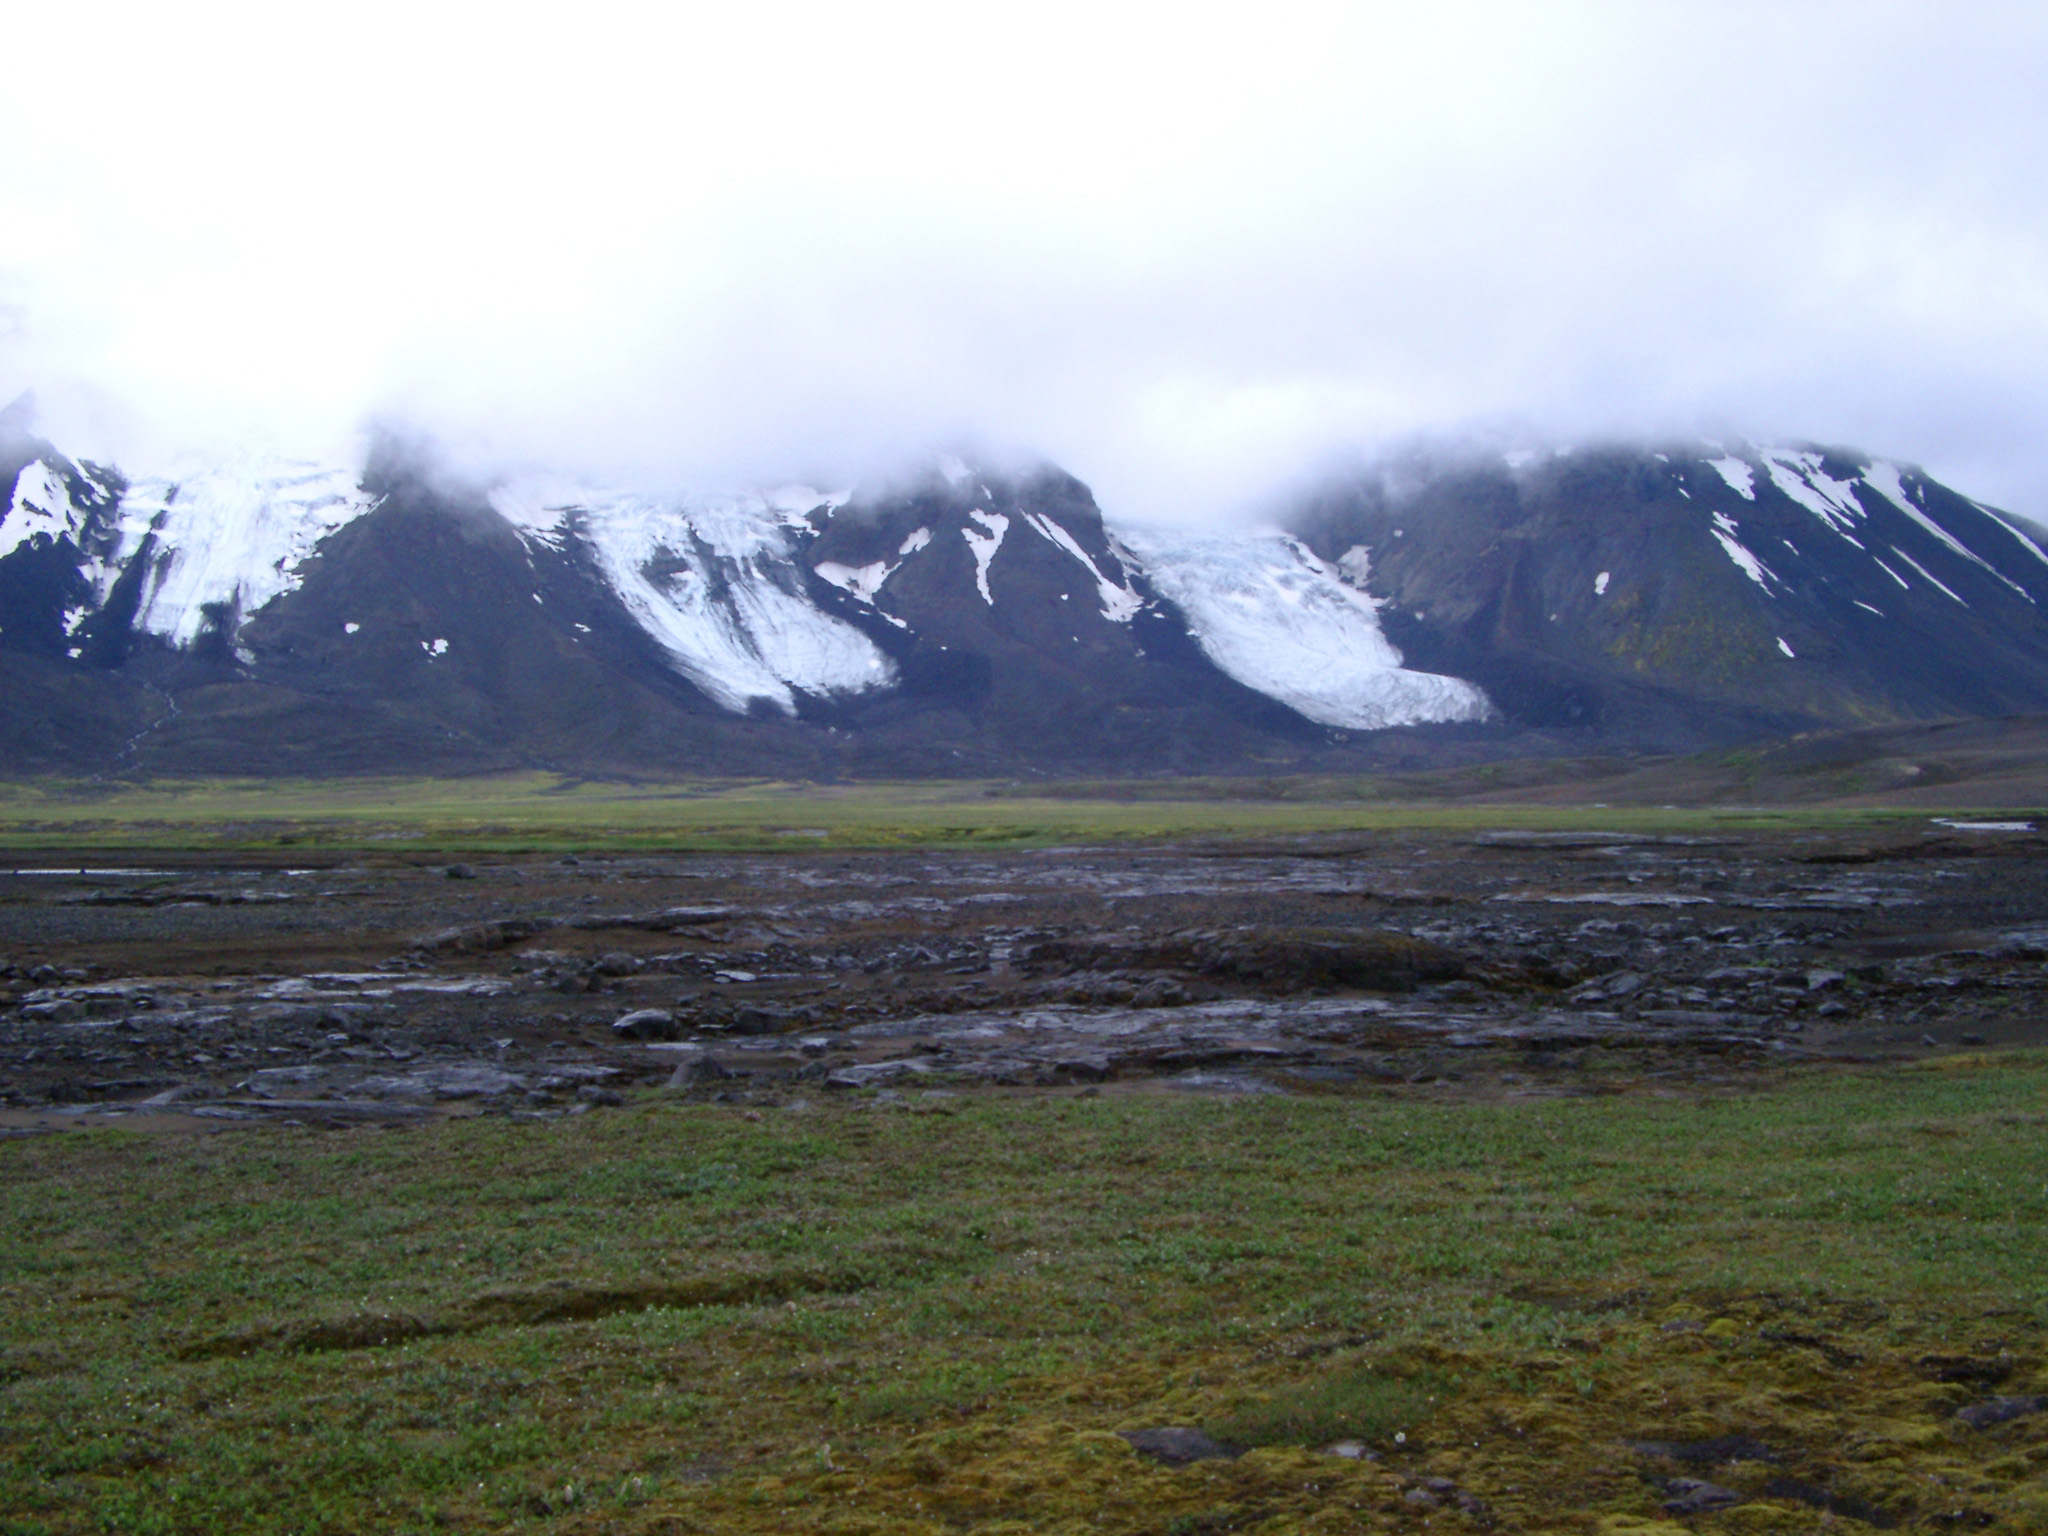 Ice flows or glaciers on a volcanic mountain peak shrouded in mist and cloud in Iceland